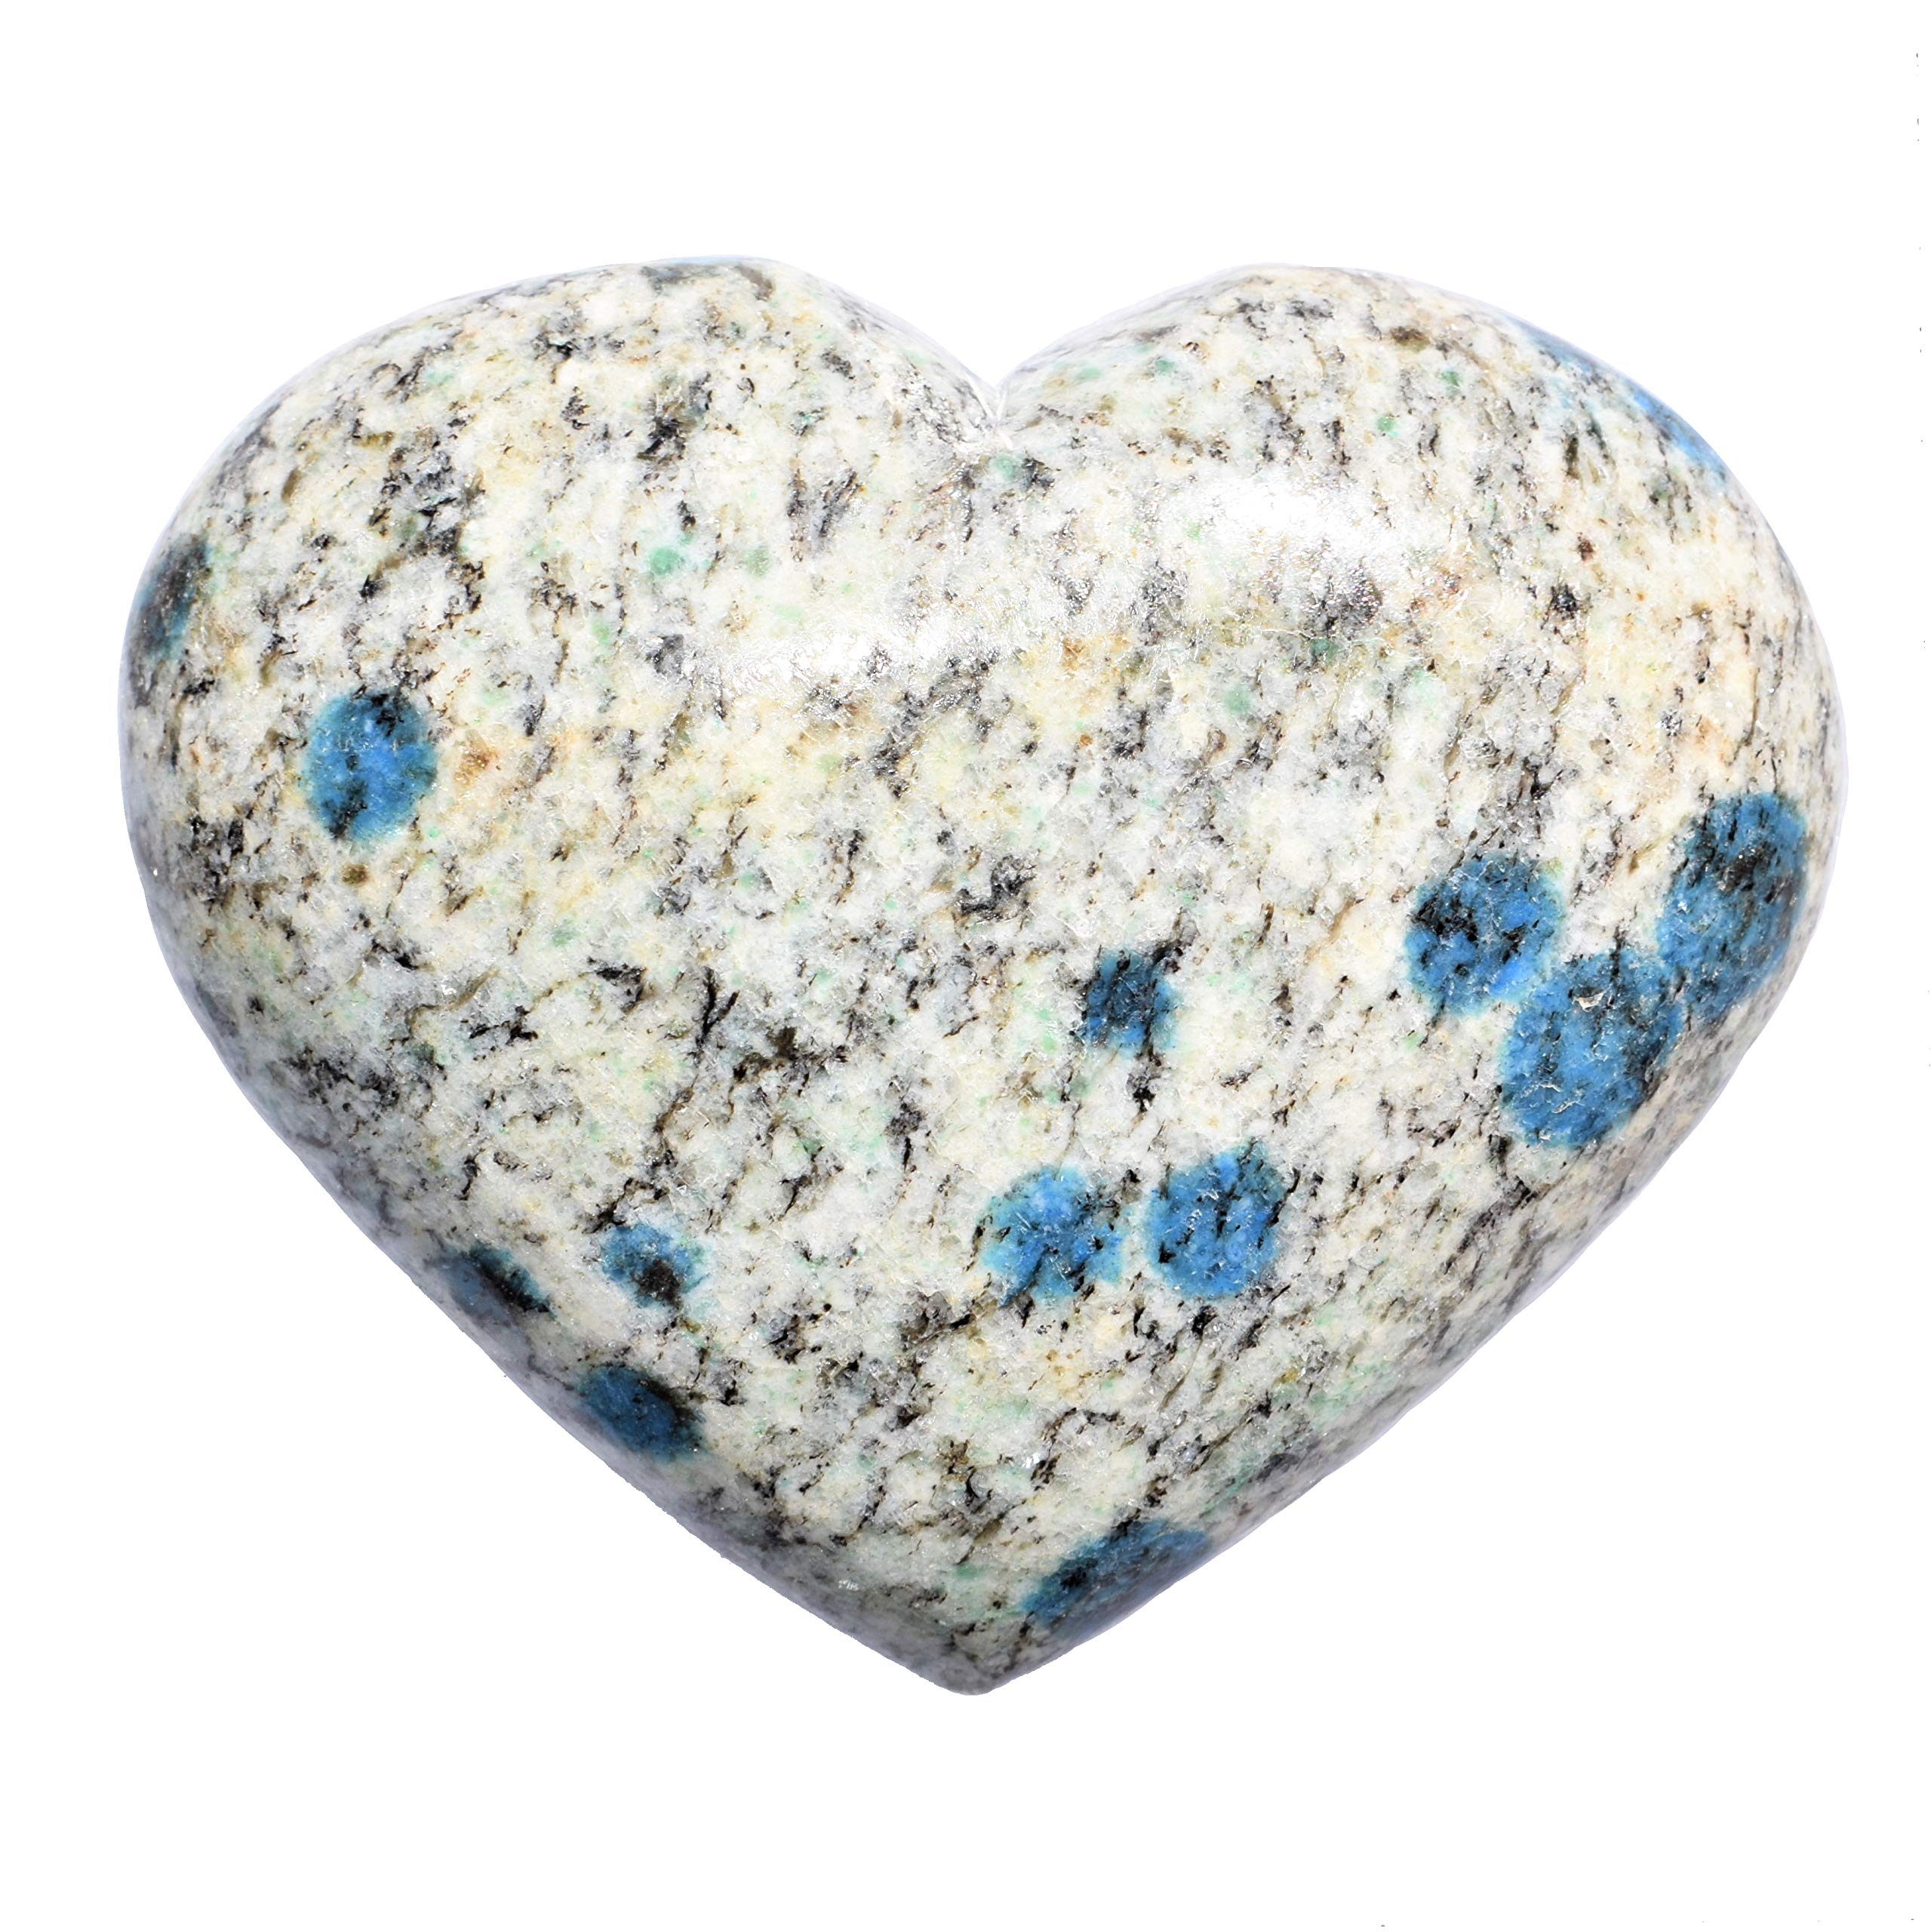 Zenergy Gems [1] One Charged 2'' Natural Himalayan K2 Granite (Azurite Spots) Crystal Hand-Carved Pocket Heart